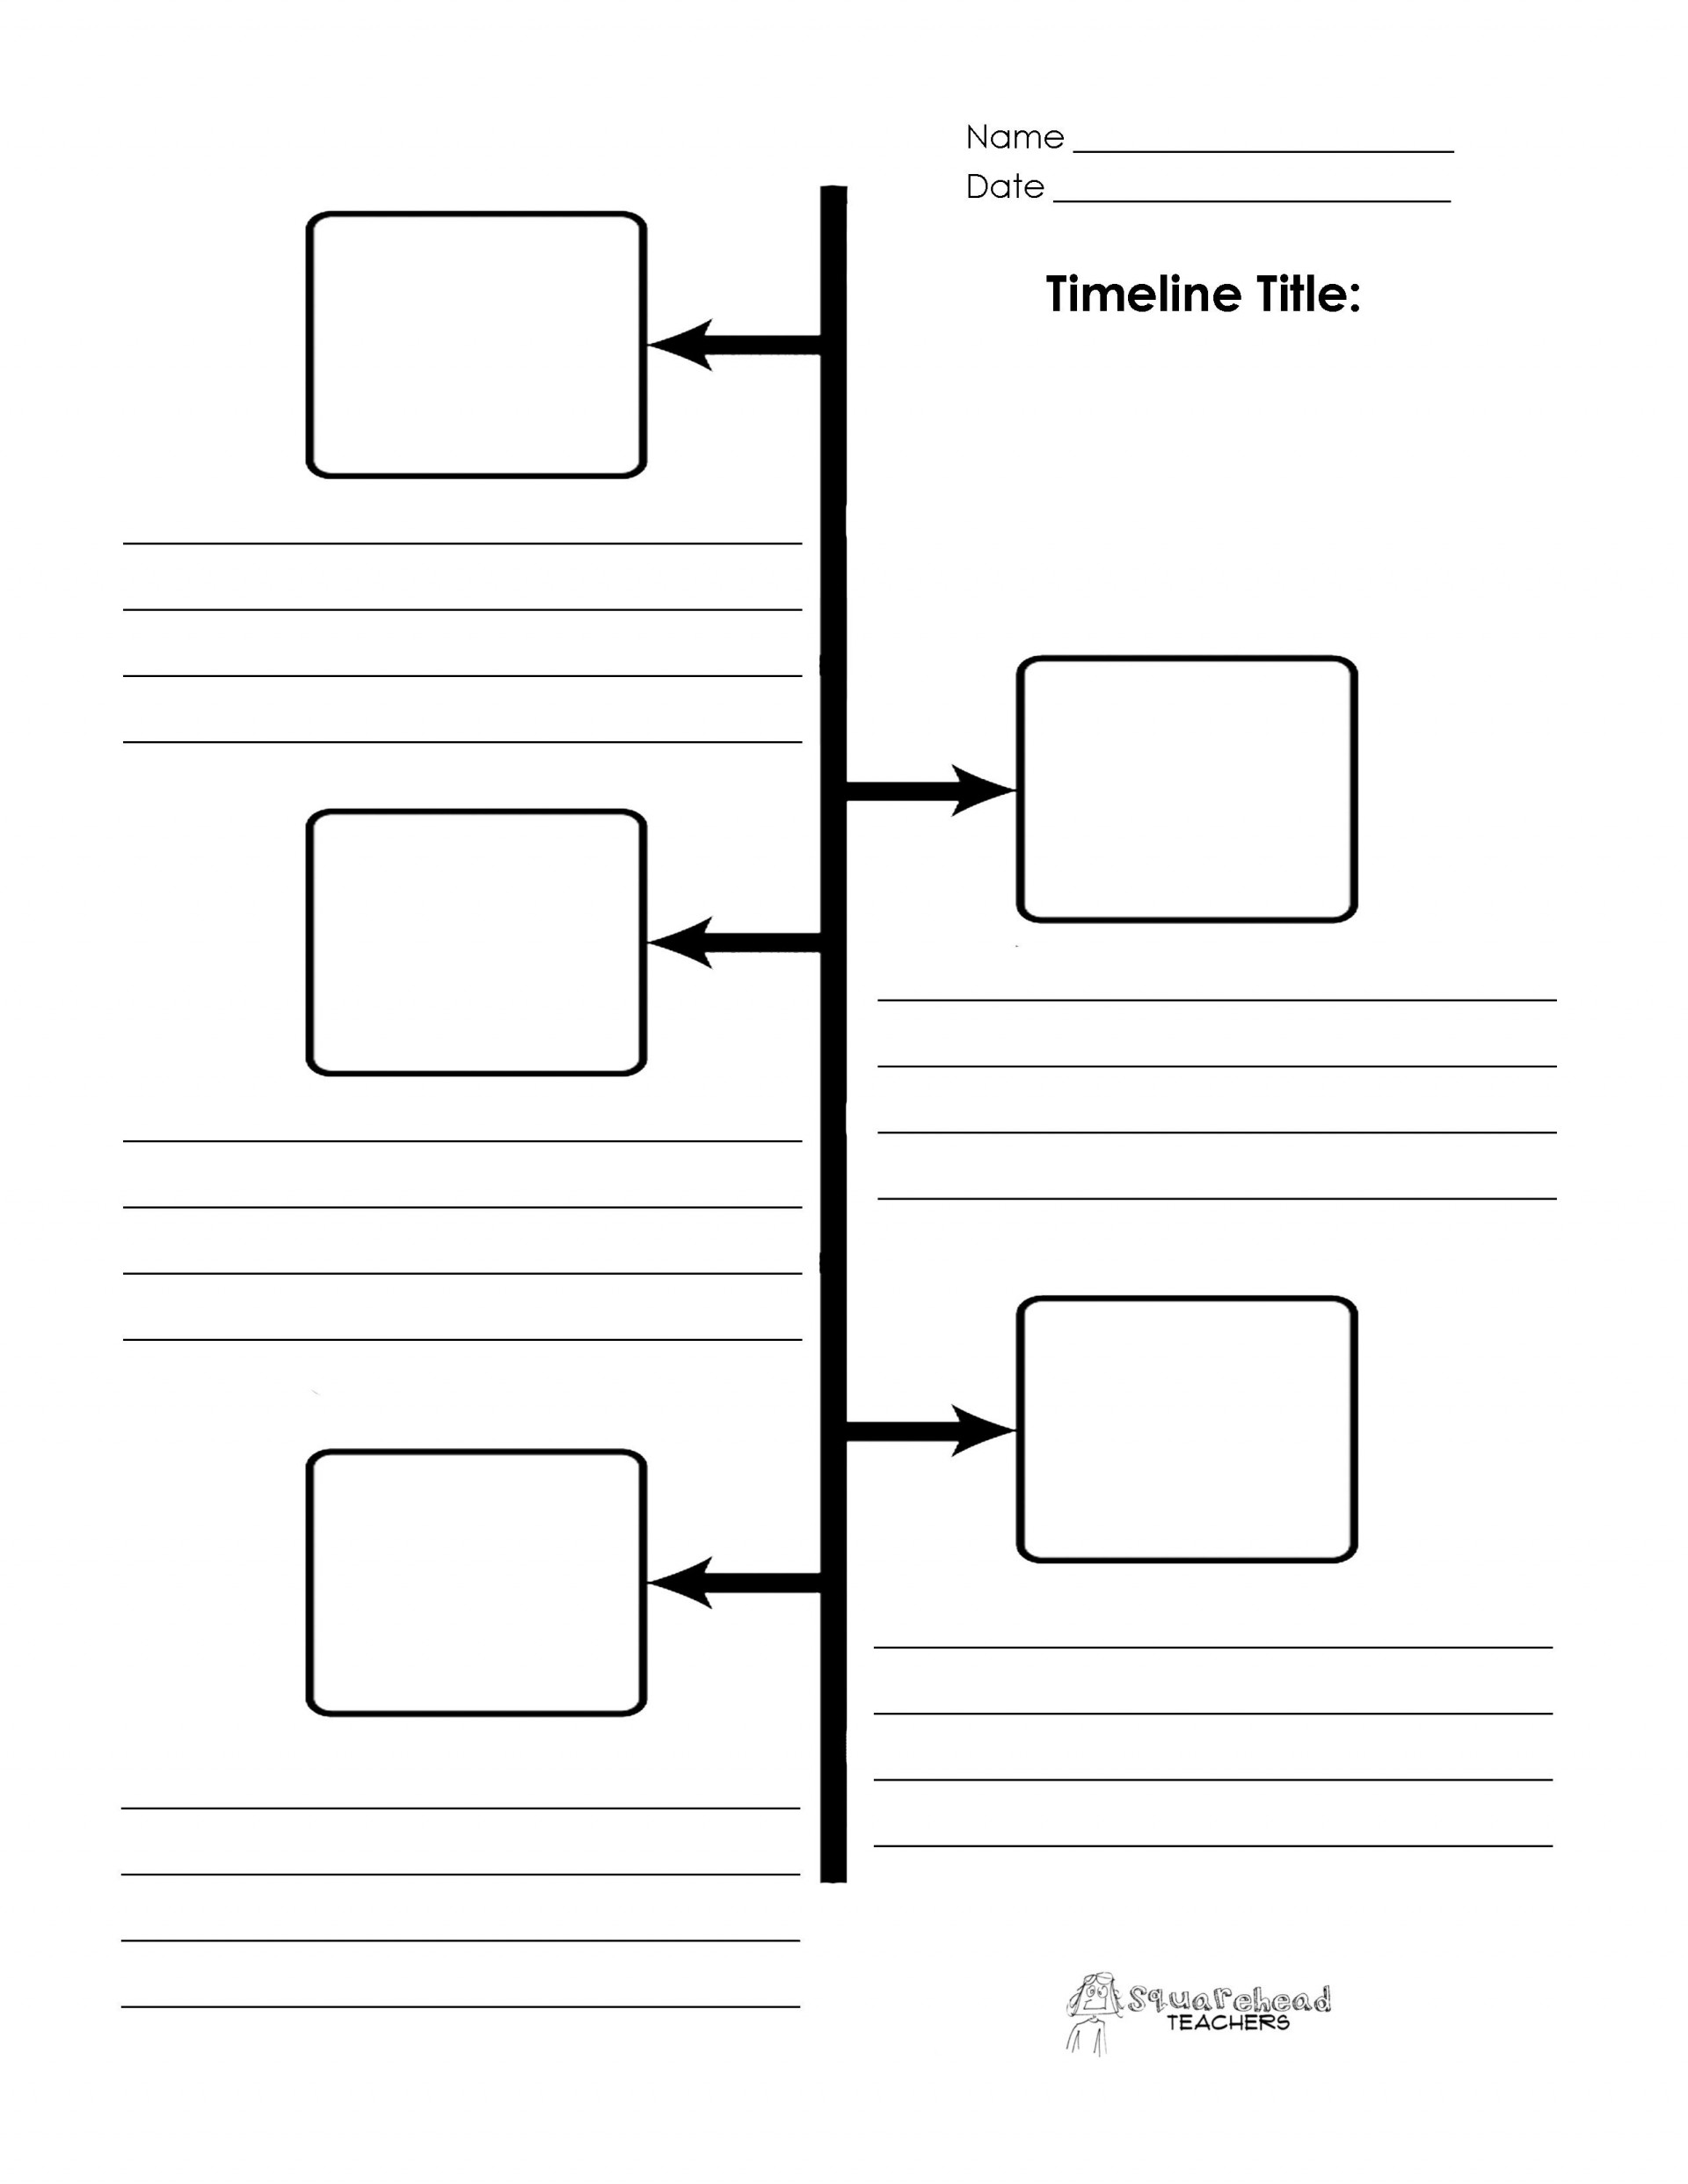 004 Phenomenal Timeline Template For Kid Highest Clarity  Kids1920